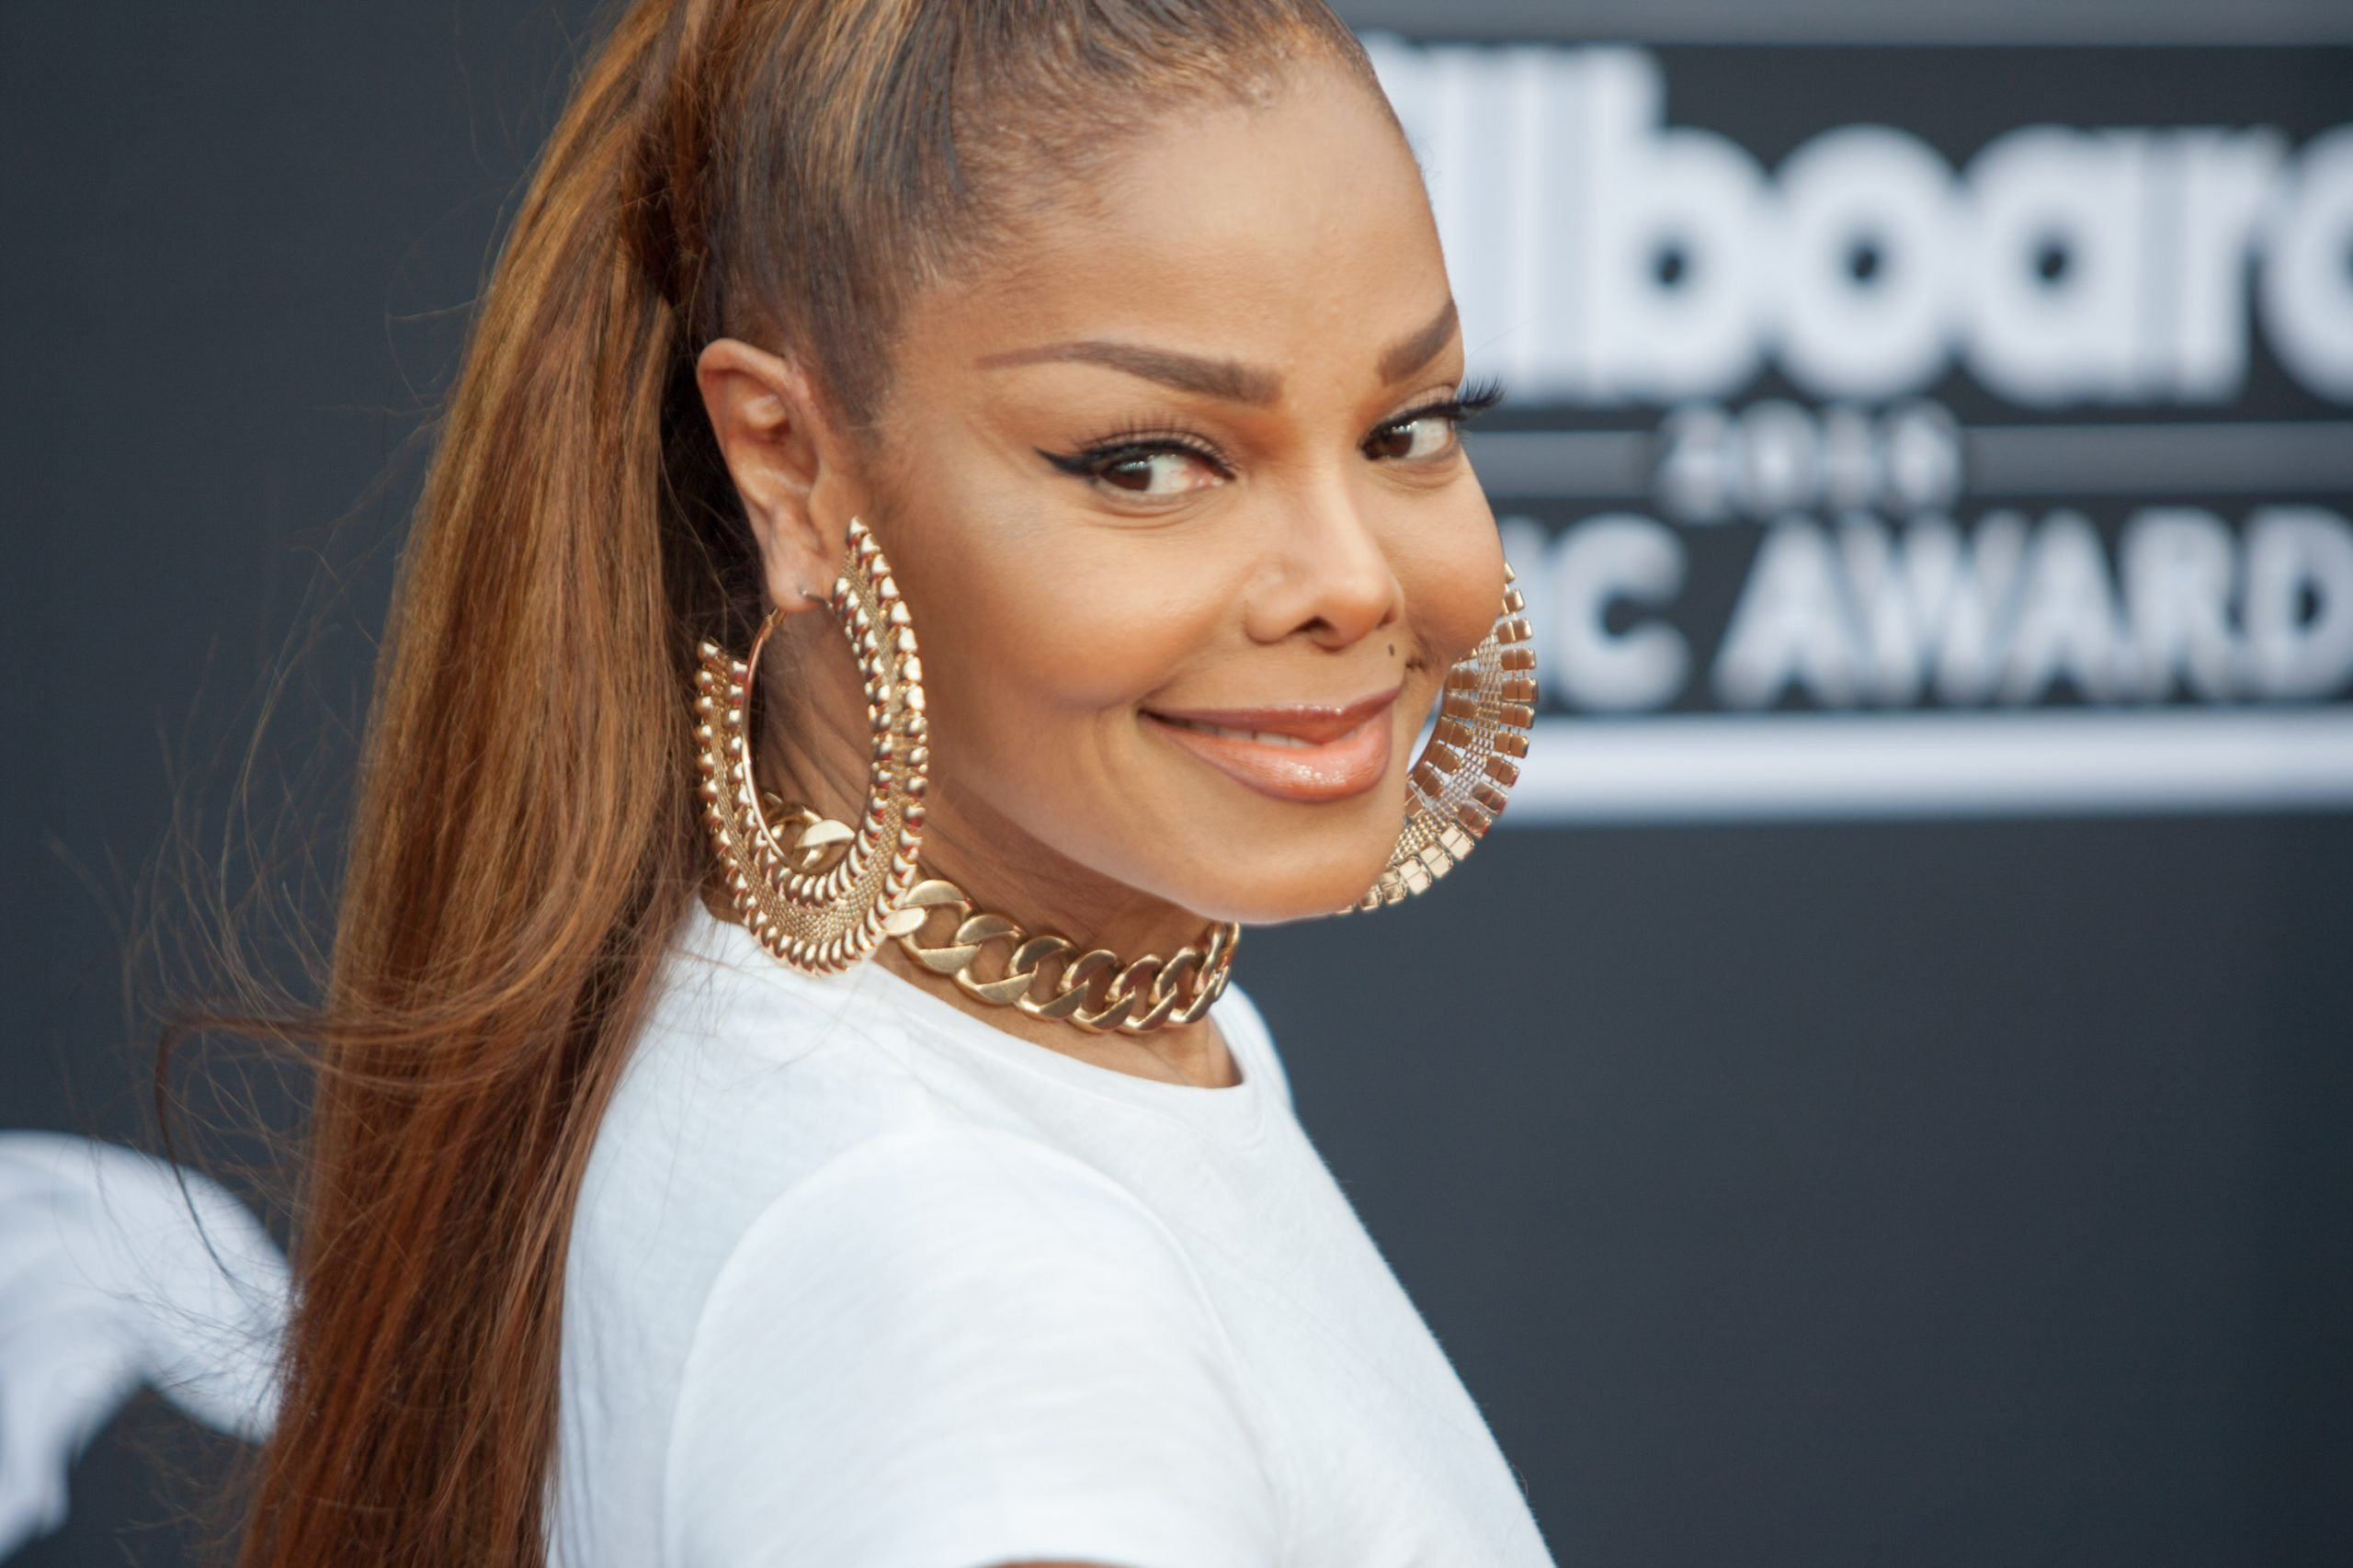 Janet Jackson smiles at a red carpet event. Her hair is tied back in a tight pony tail. She wears large, gold hoop earrings and a white top.